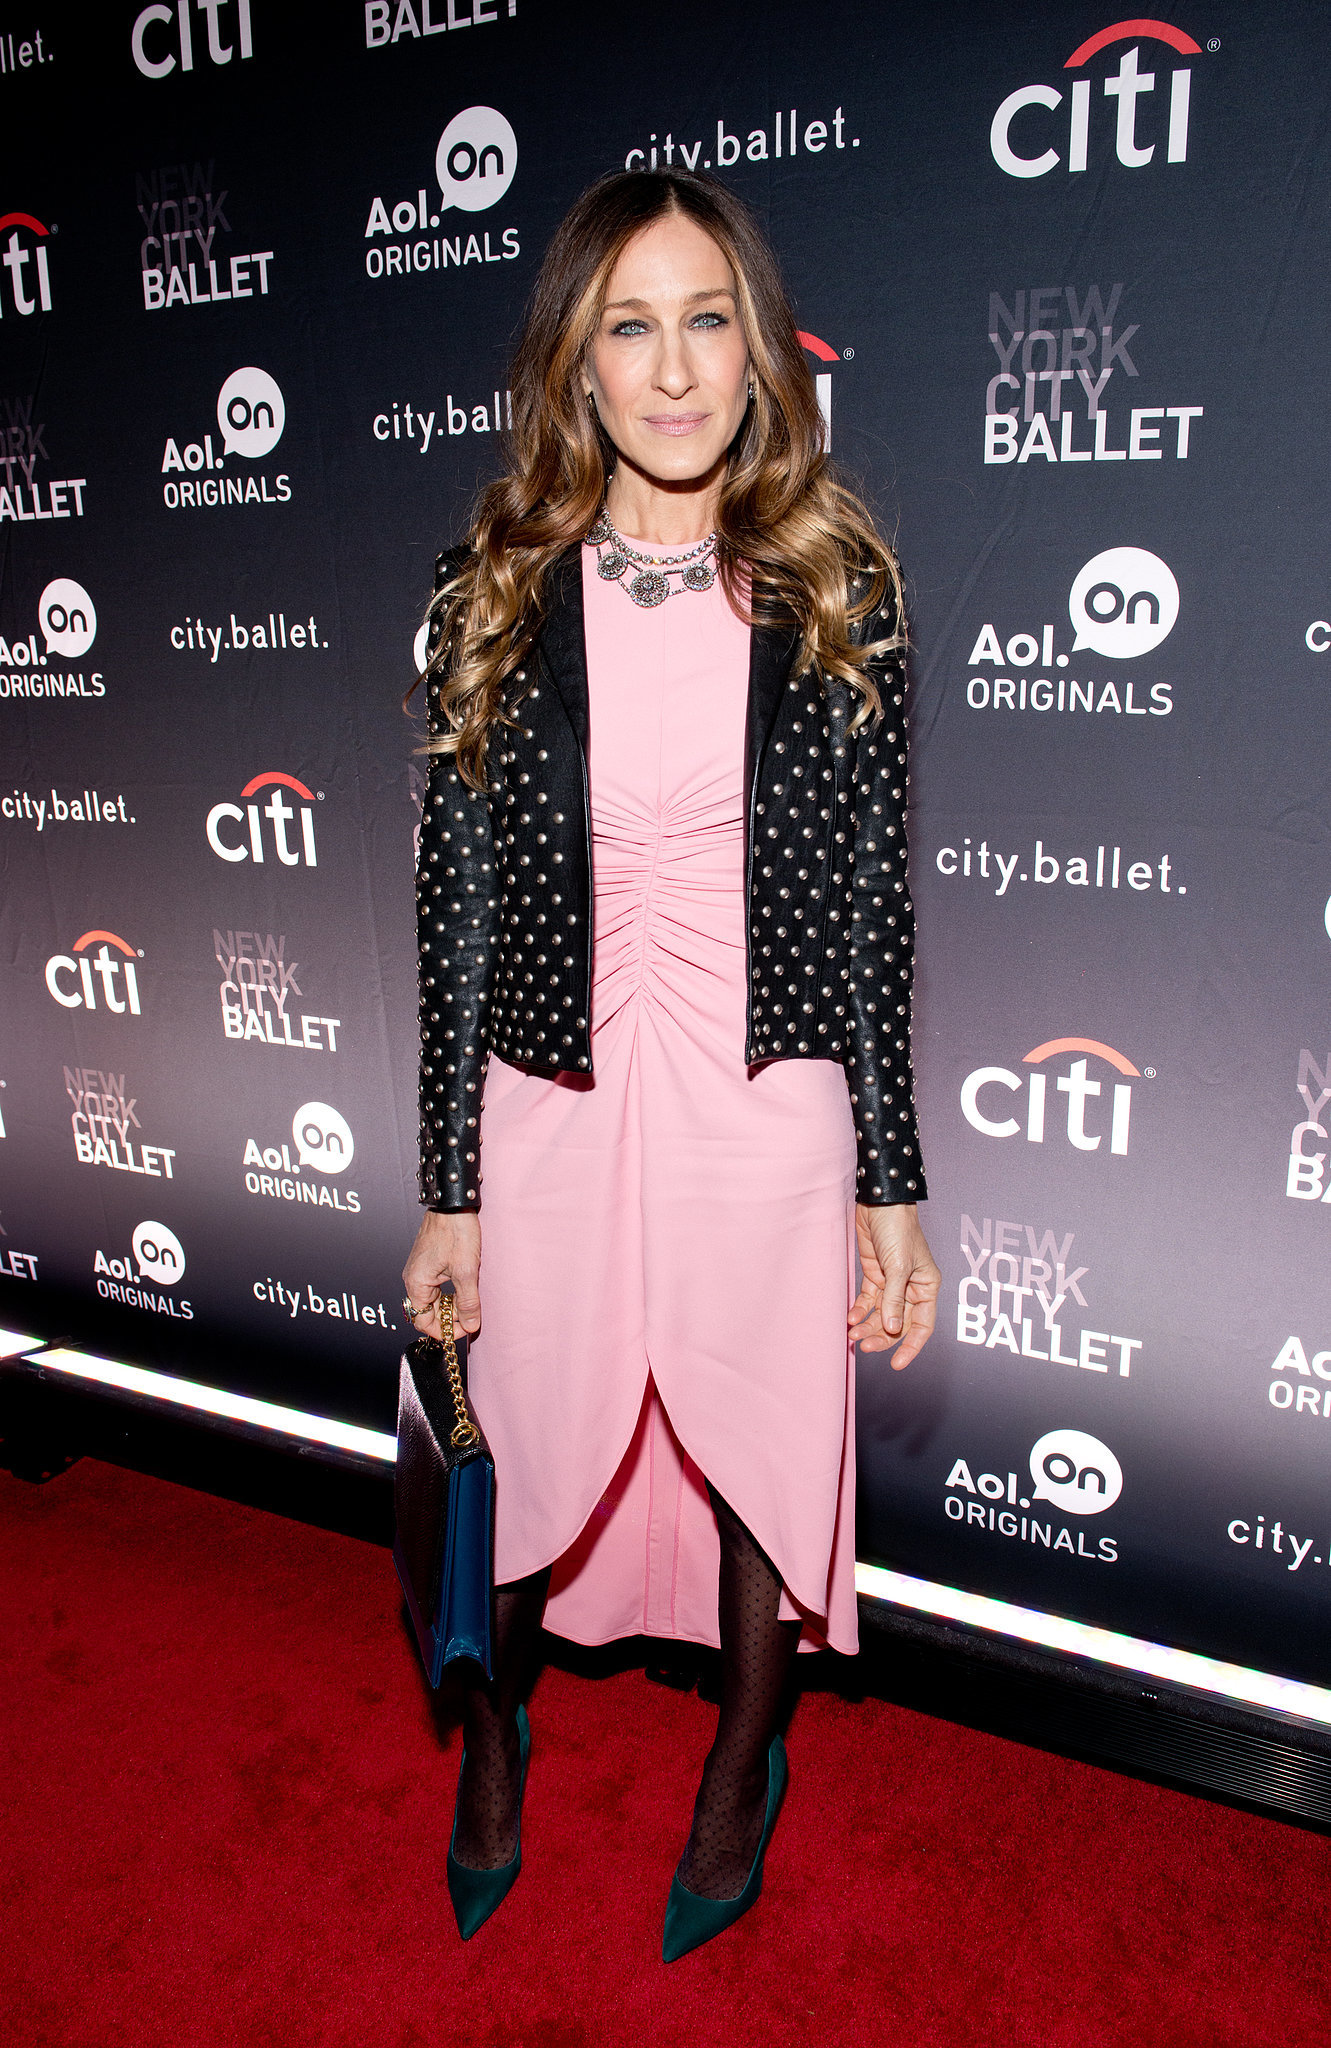 Leave it to Carrie Bradshaw Sarah Jessica Parker to absolutely kill it in a sheer-sleeved pastel pink Giles high-low dress and studded Saint Laurent jacket in November 2013. We won't even get into those luxe forest-green pumps a